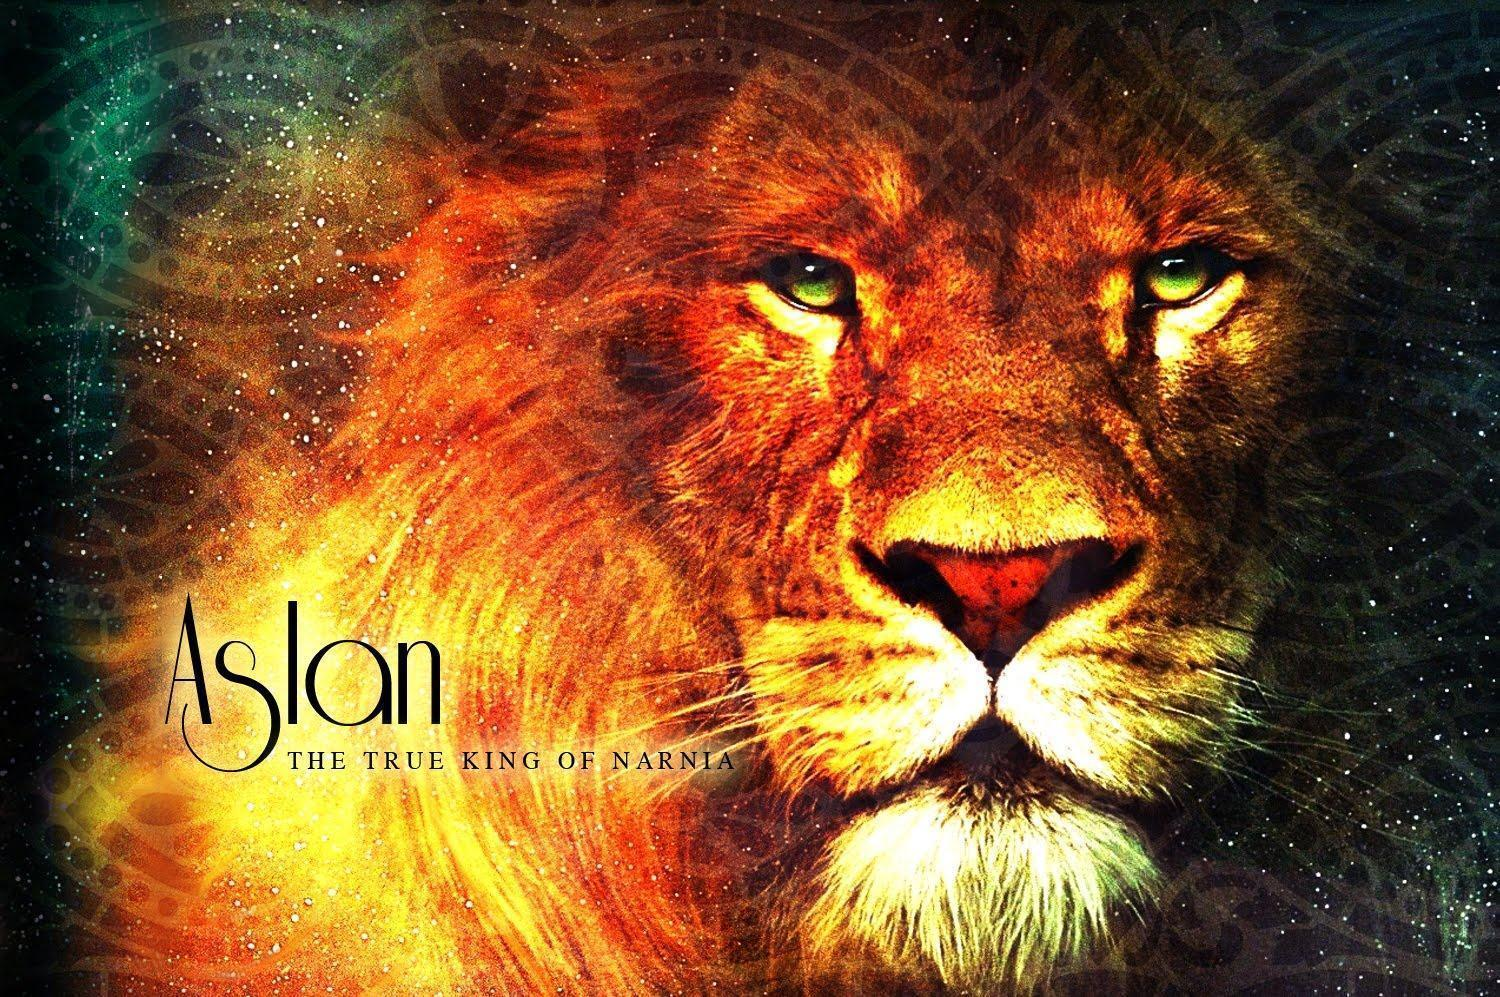 Aslan Wallpapers - Wallpaper Cave for Narnia Aslan Wallpaper  10lpwja